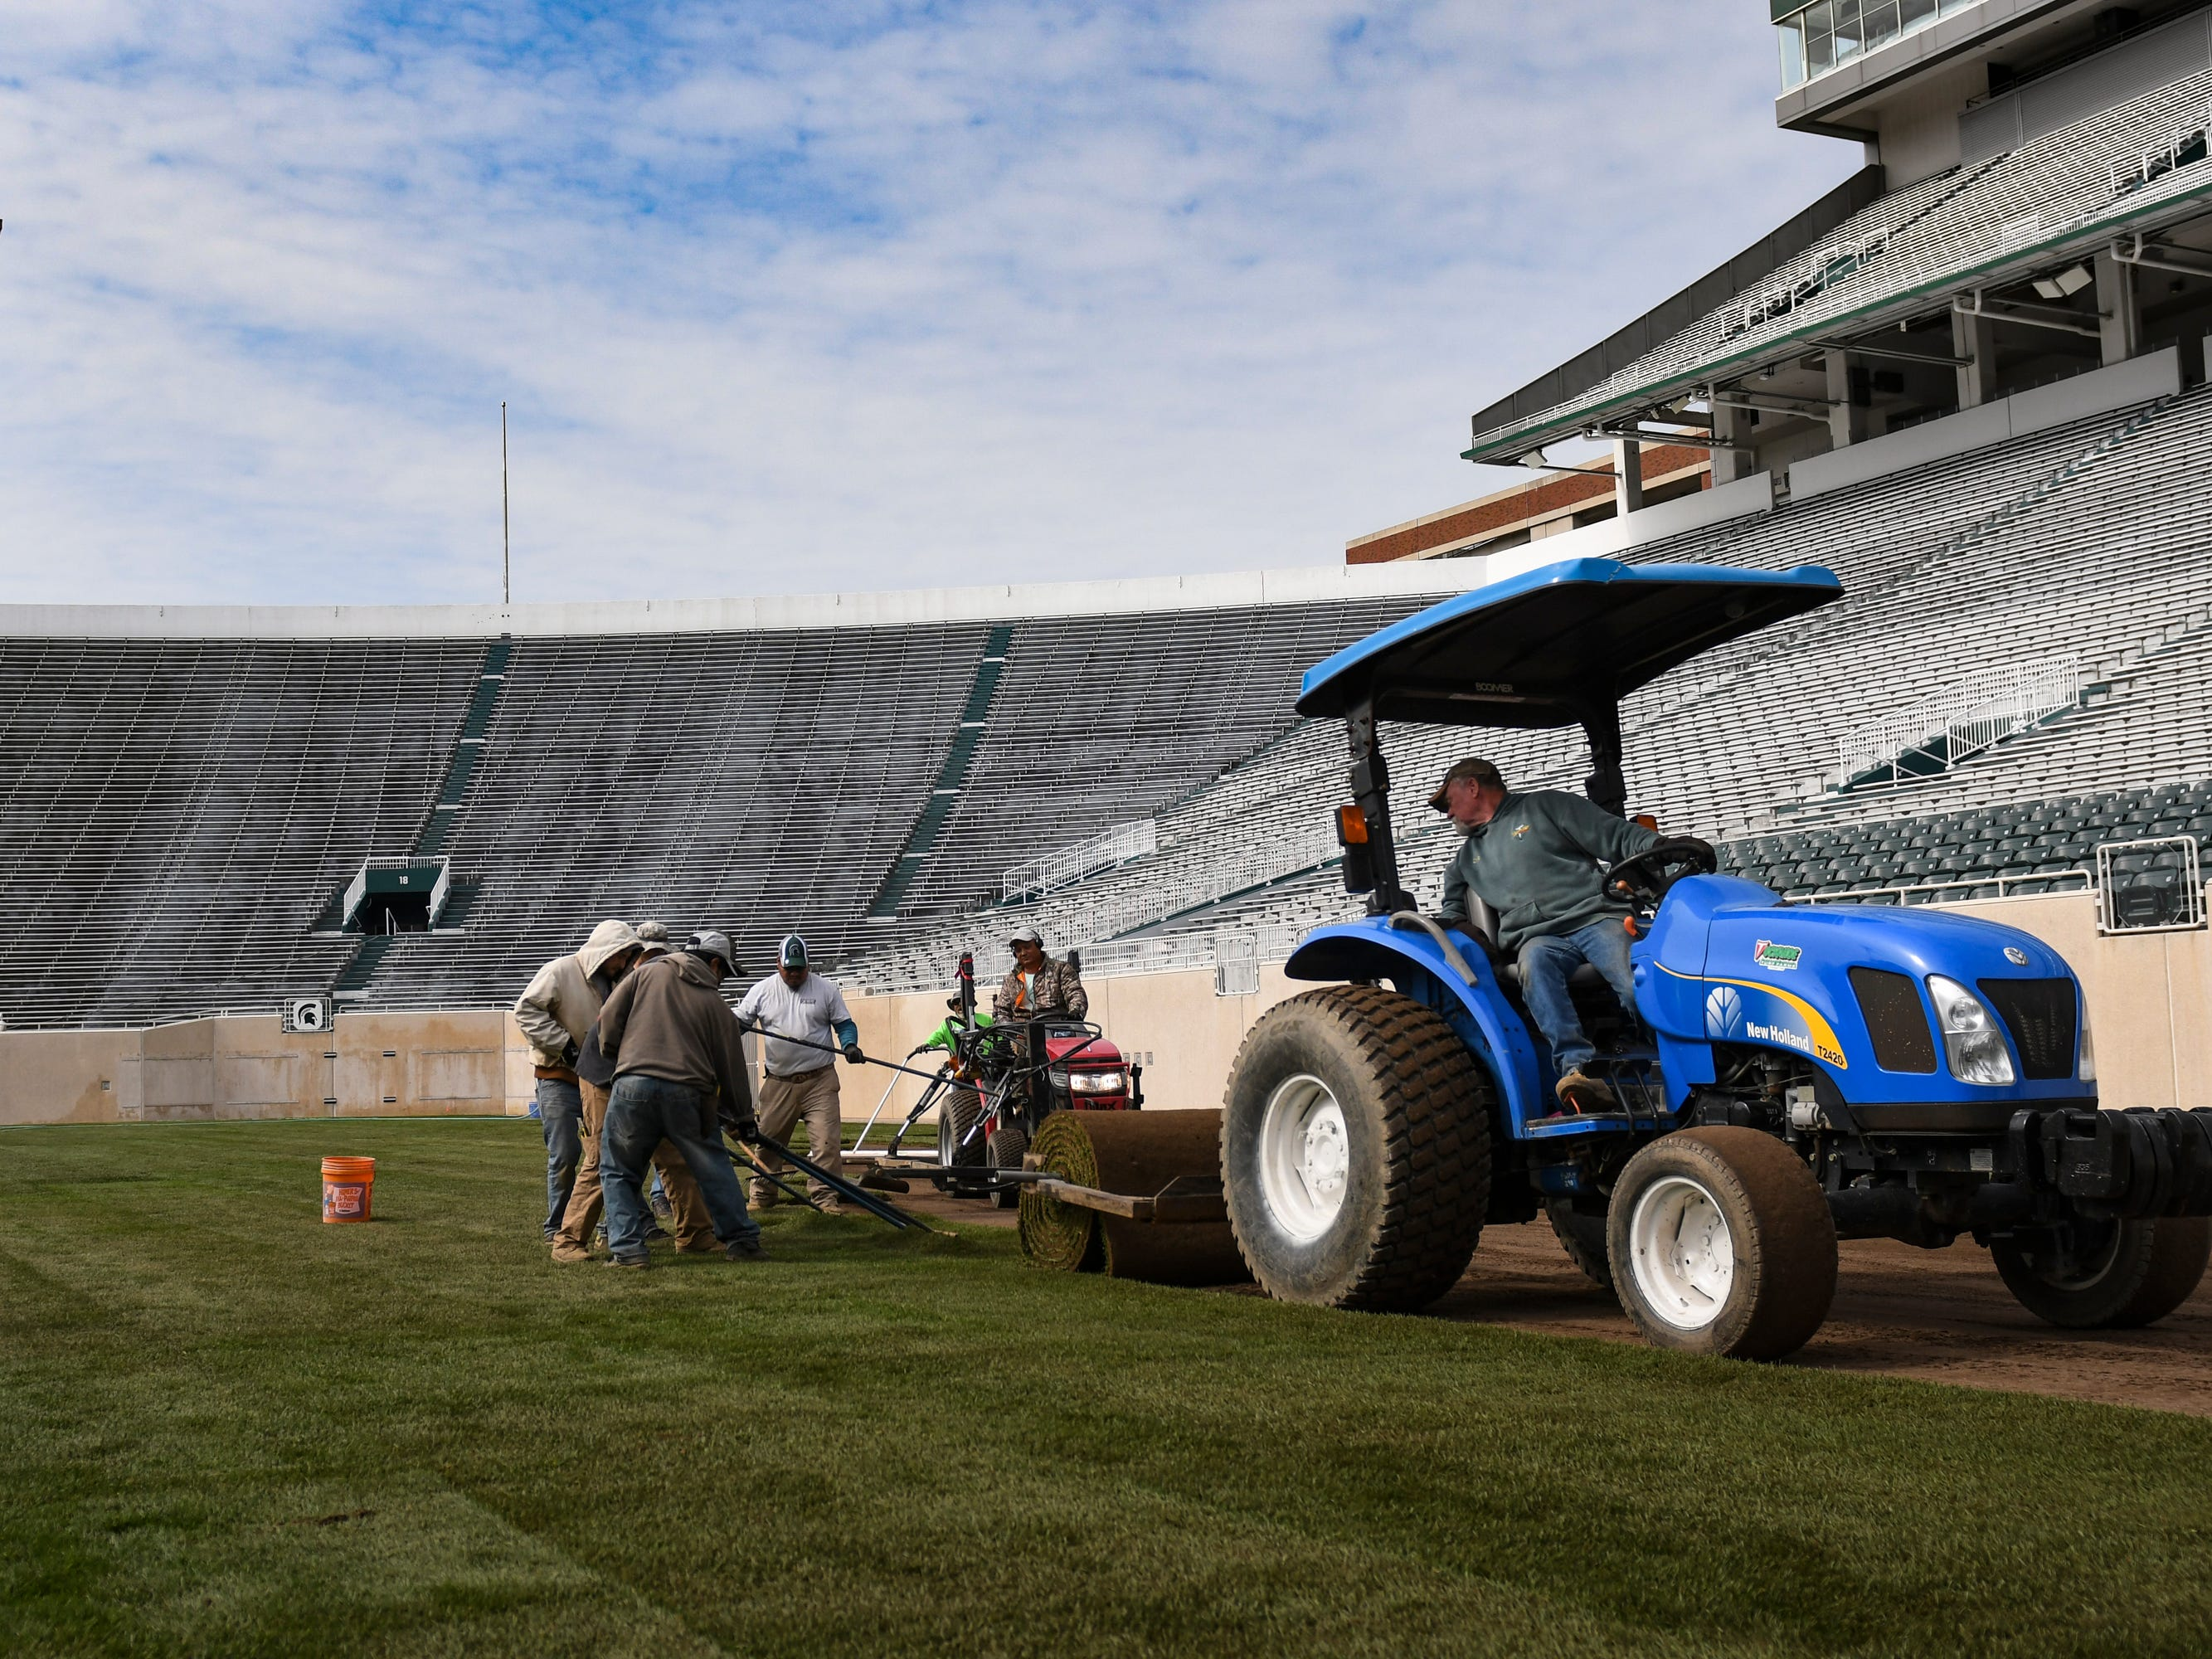 A crew of workers installed new Kentucky bluegrass sod Wednesday on the football field at Michigan State's Spartan Stadium in East Lansing.  About 375 rolls of new Kentucky Bluegrass will cover the nearly 70,000 square feet on the stadium's playing surface.